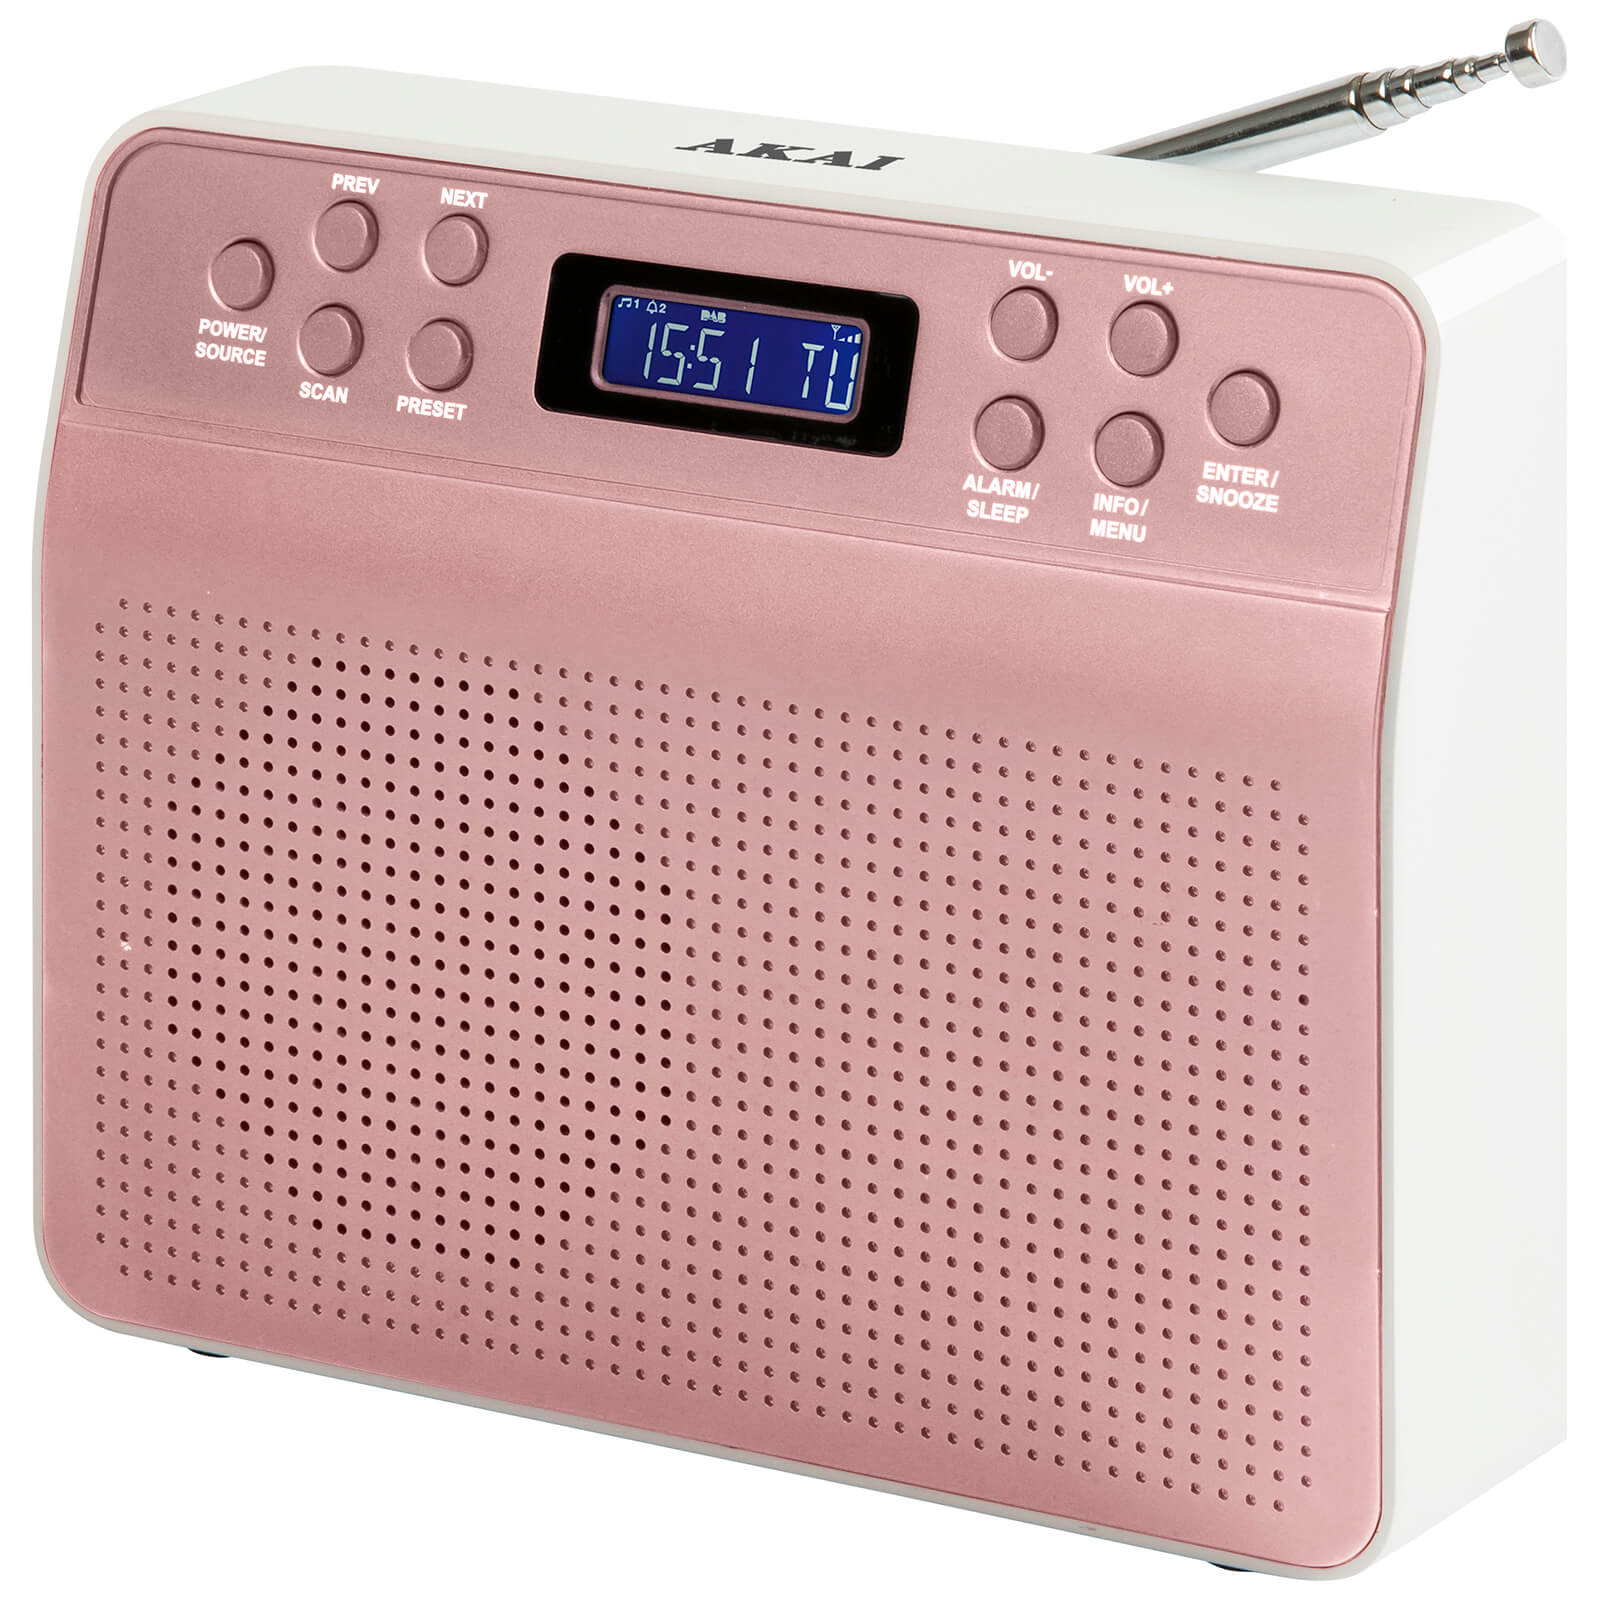 Akai DYNMX Portable DAB Radio with LCD Screen - Rose Gold